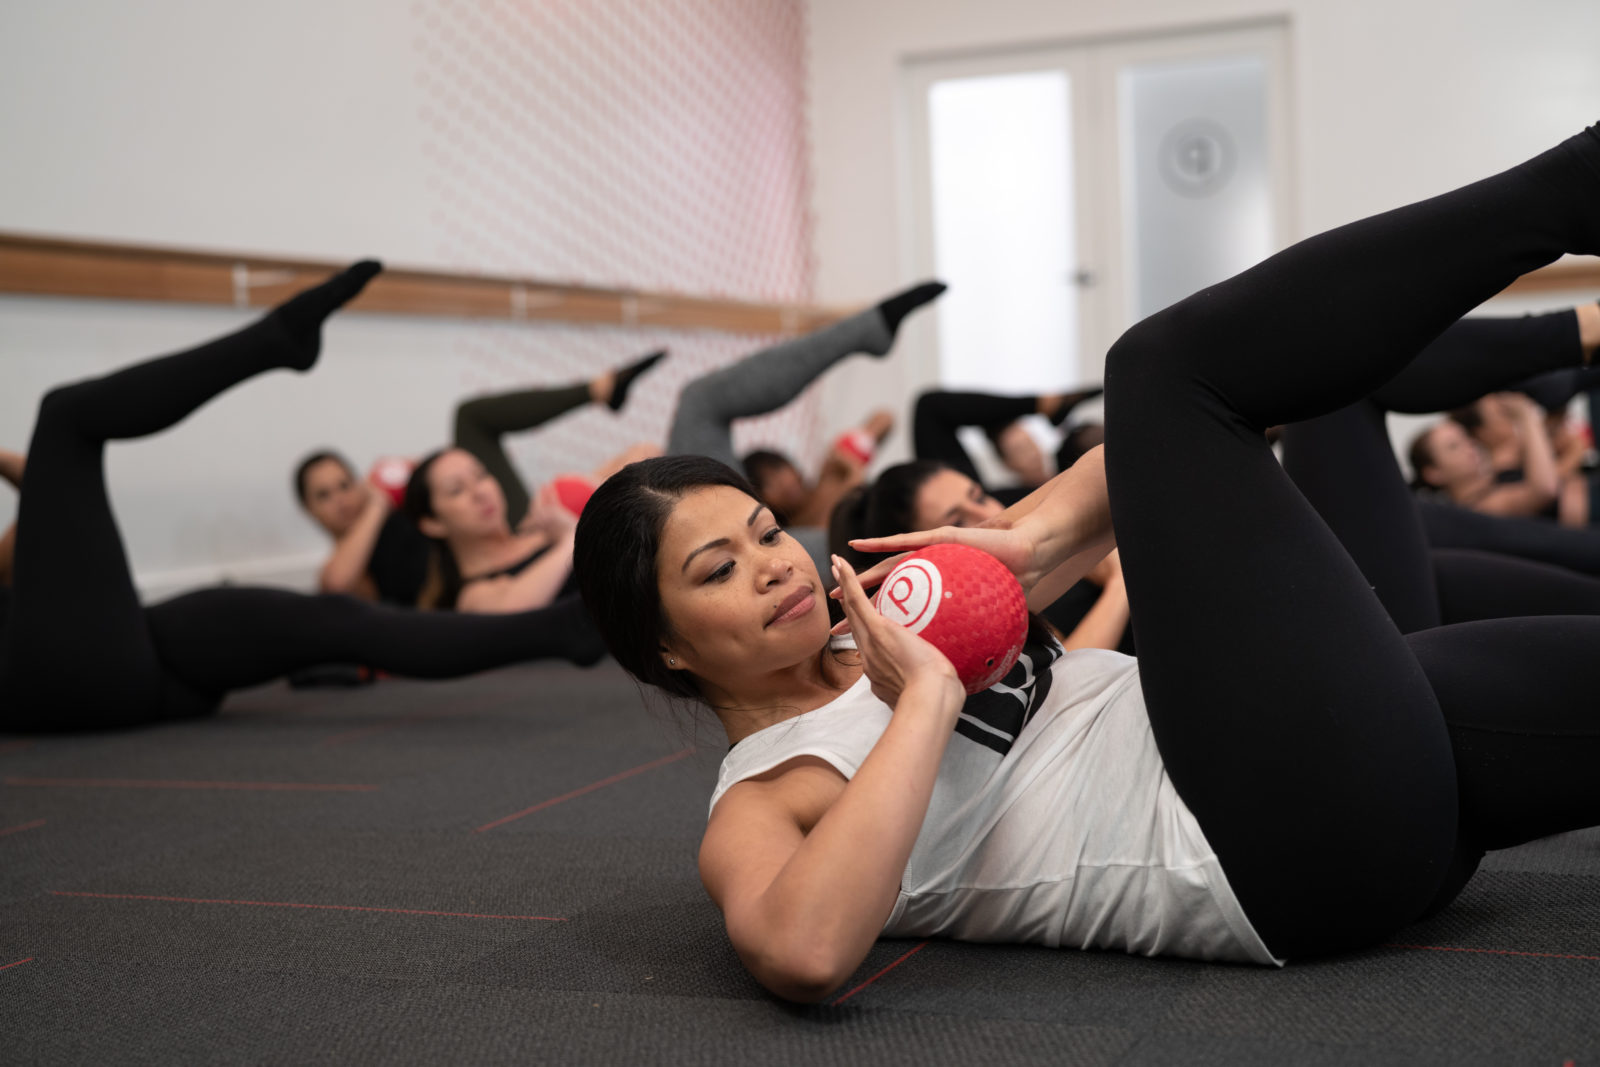 Workout classes nashville for people of all fitness levels